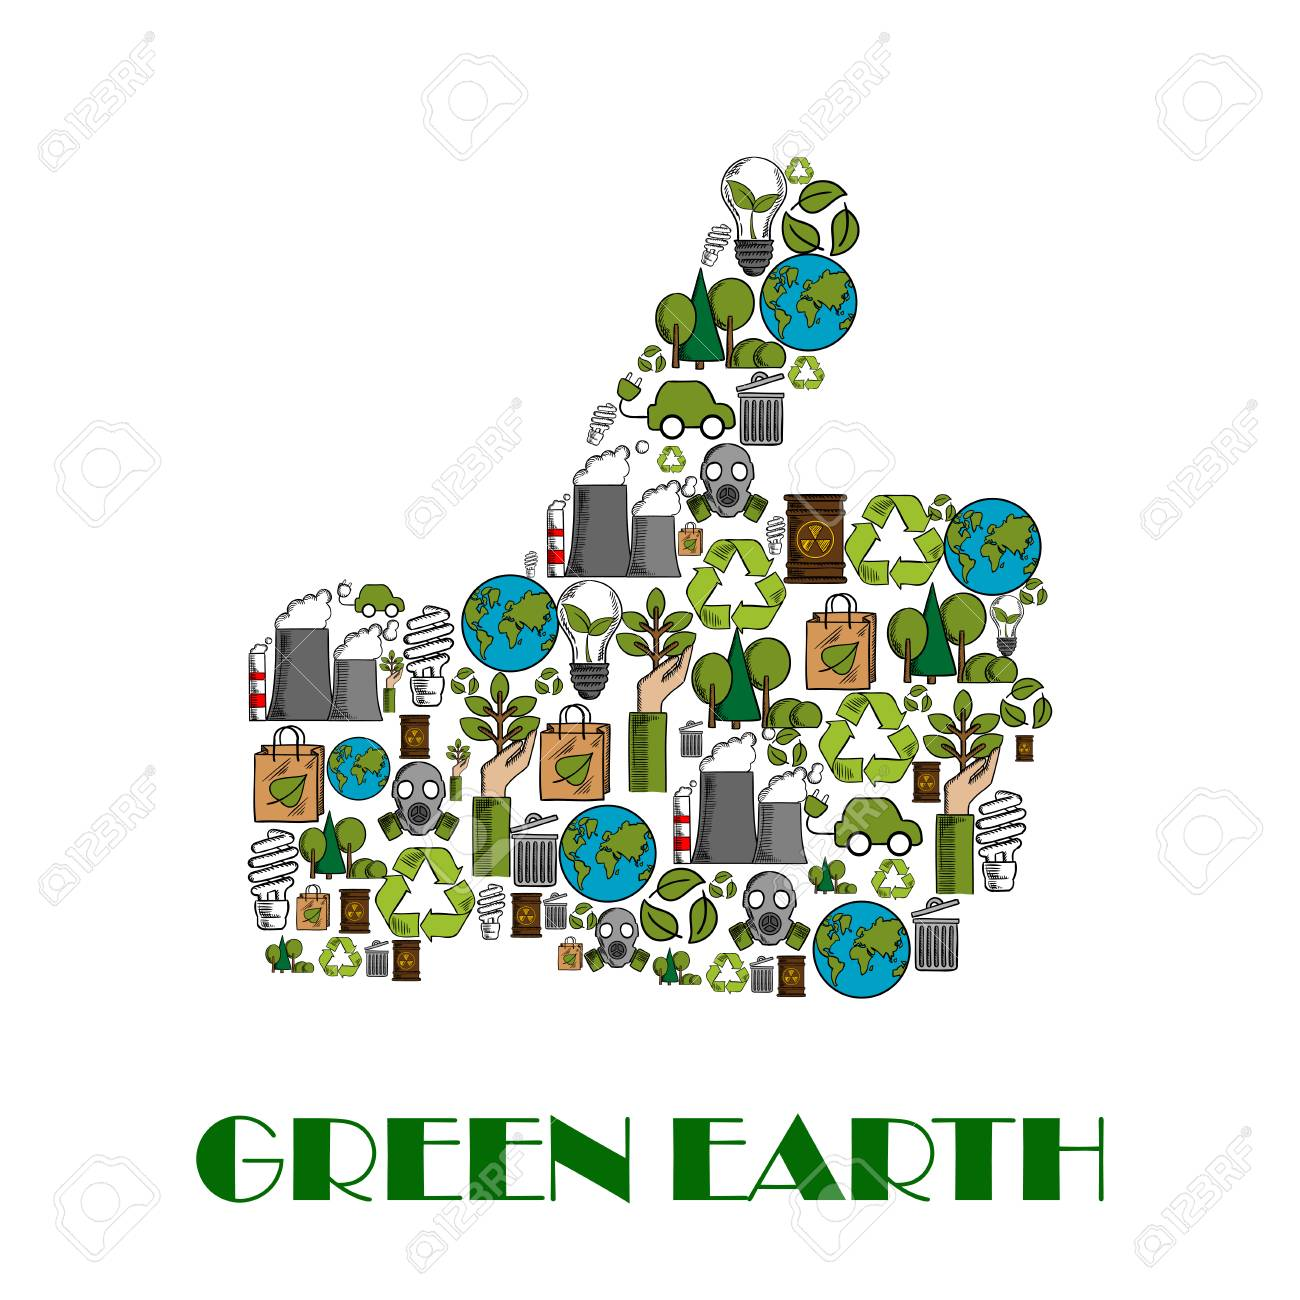 Green Earth Nature Ecology Concept Poster. Thumbs Up Vector Symbol For  Environment Protection Designed Of